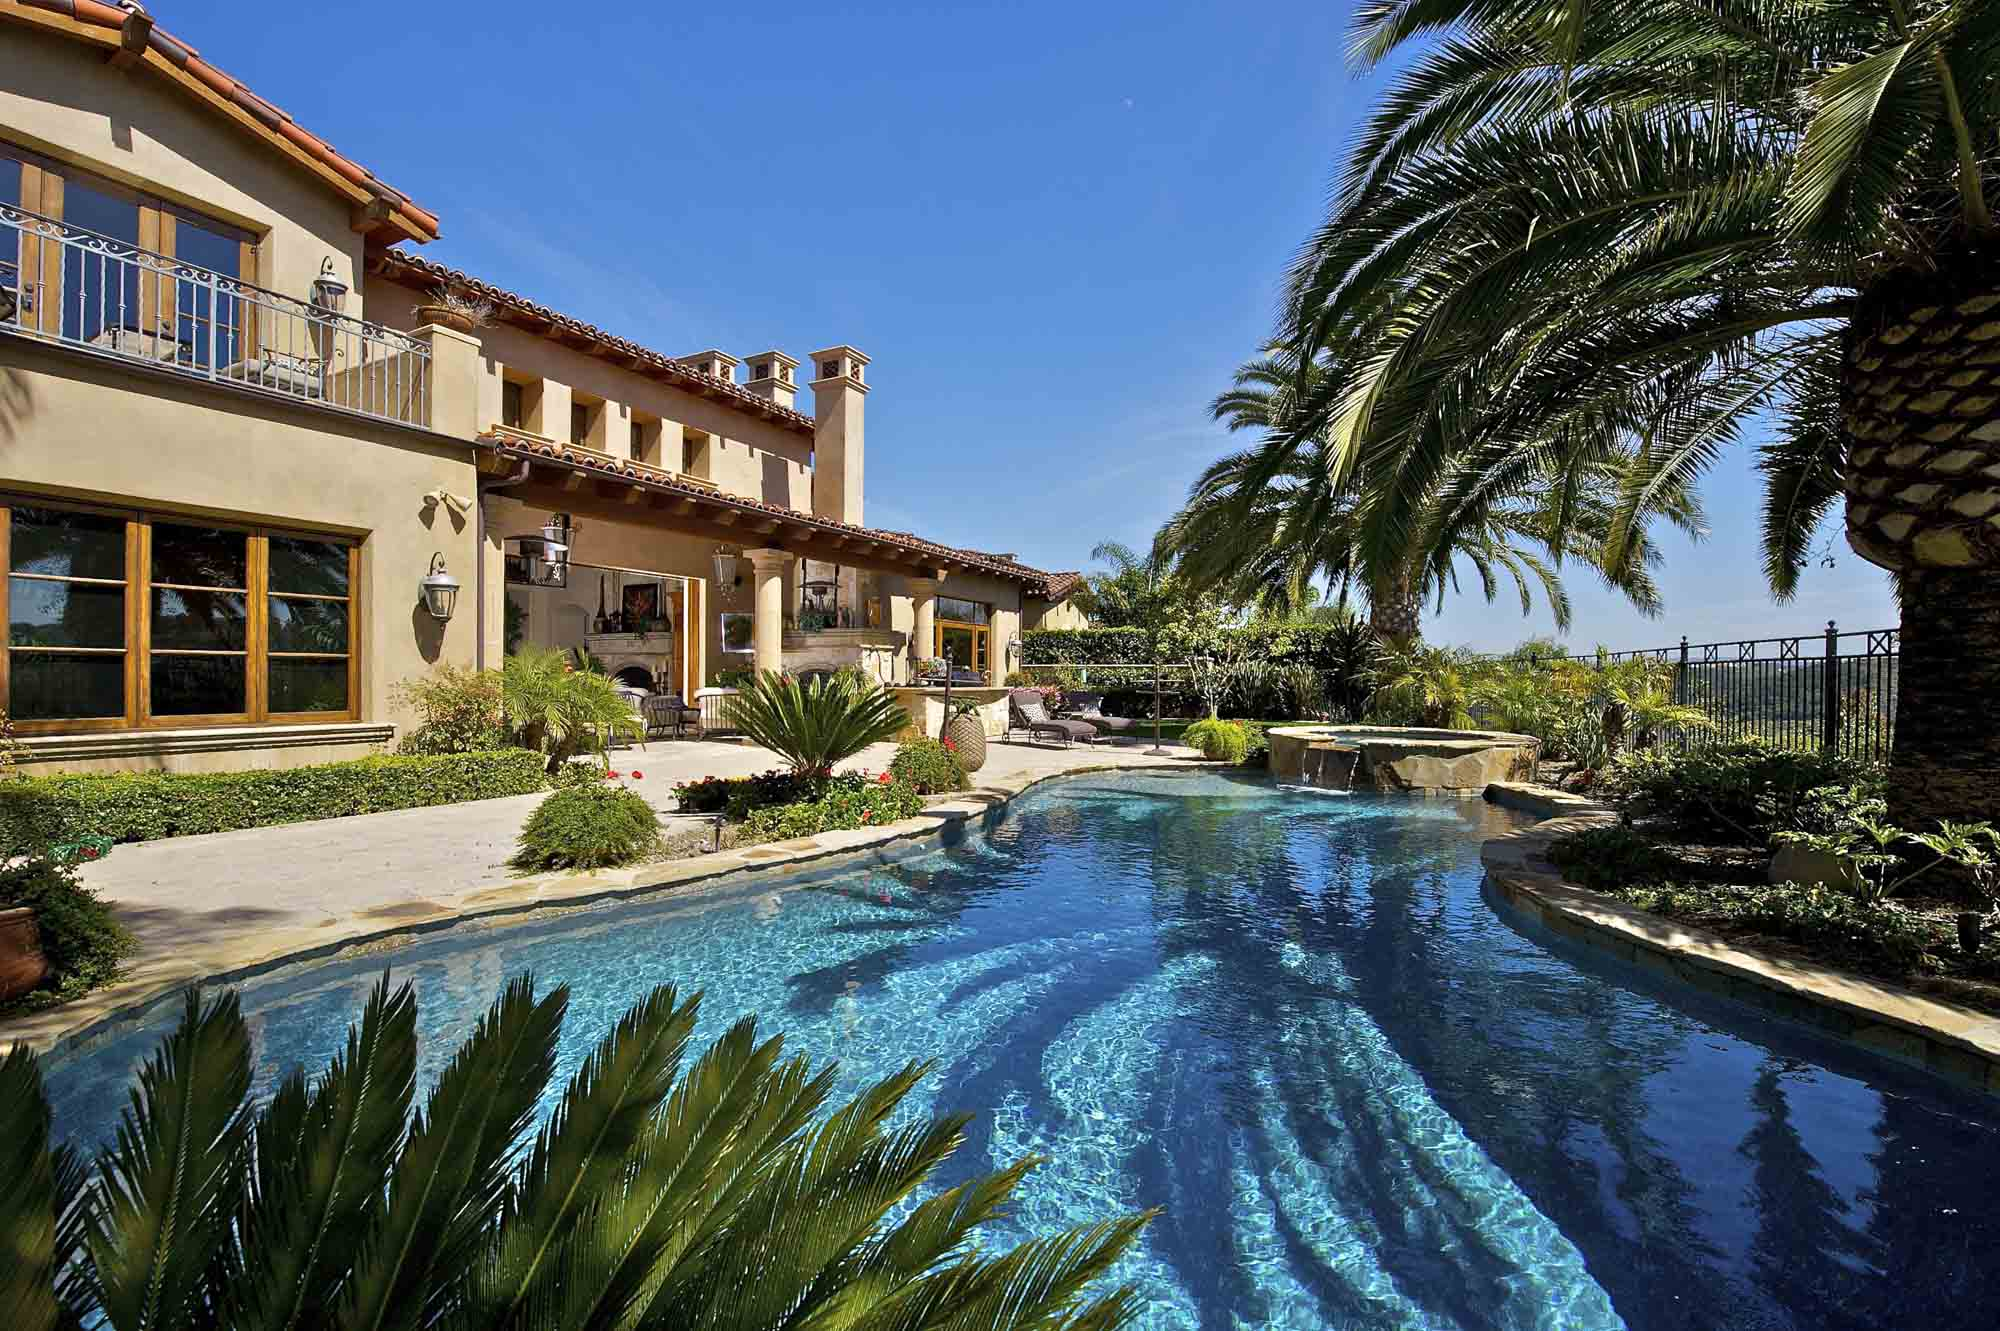 Chris bastidas beverly hills real estate Website home image